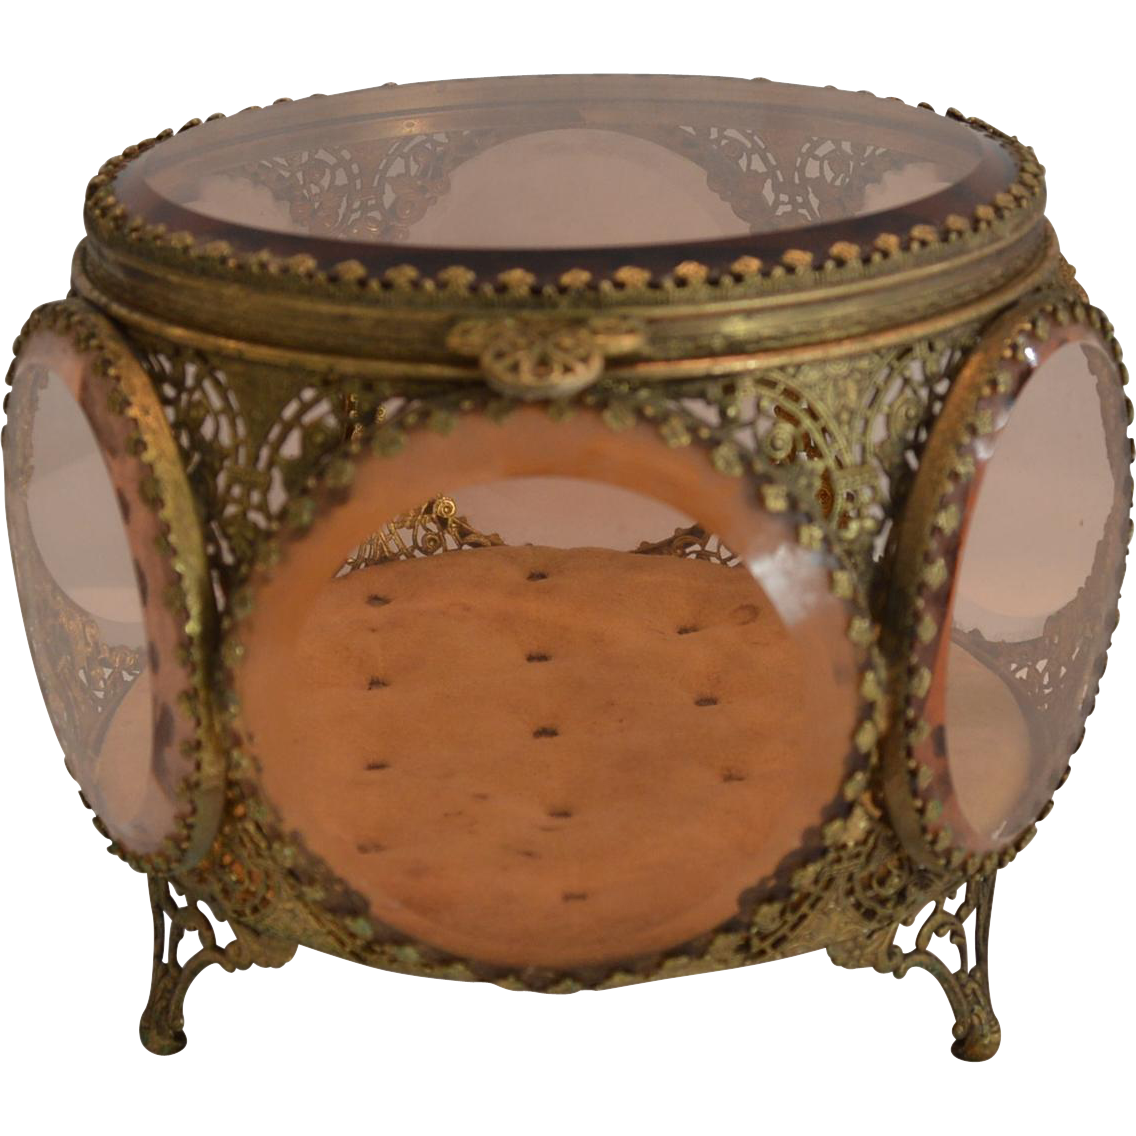 Antique Jewelry Box Casket Round with lid 6 Sided with Amber